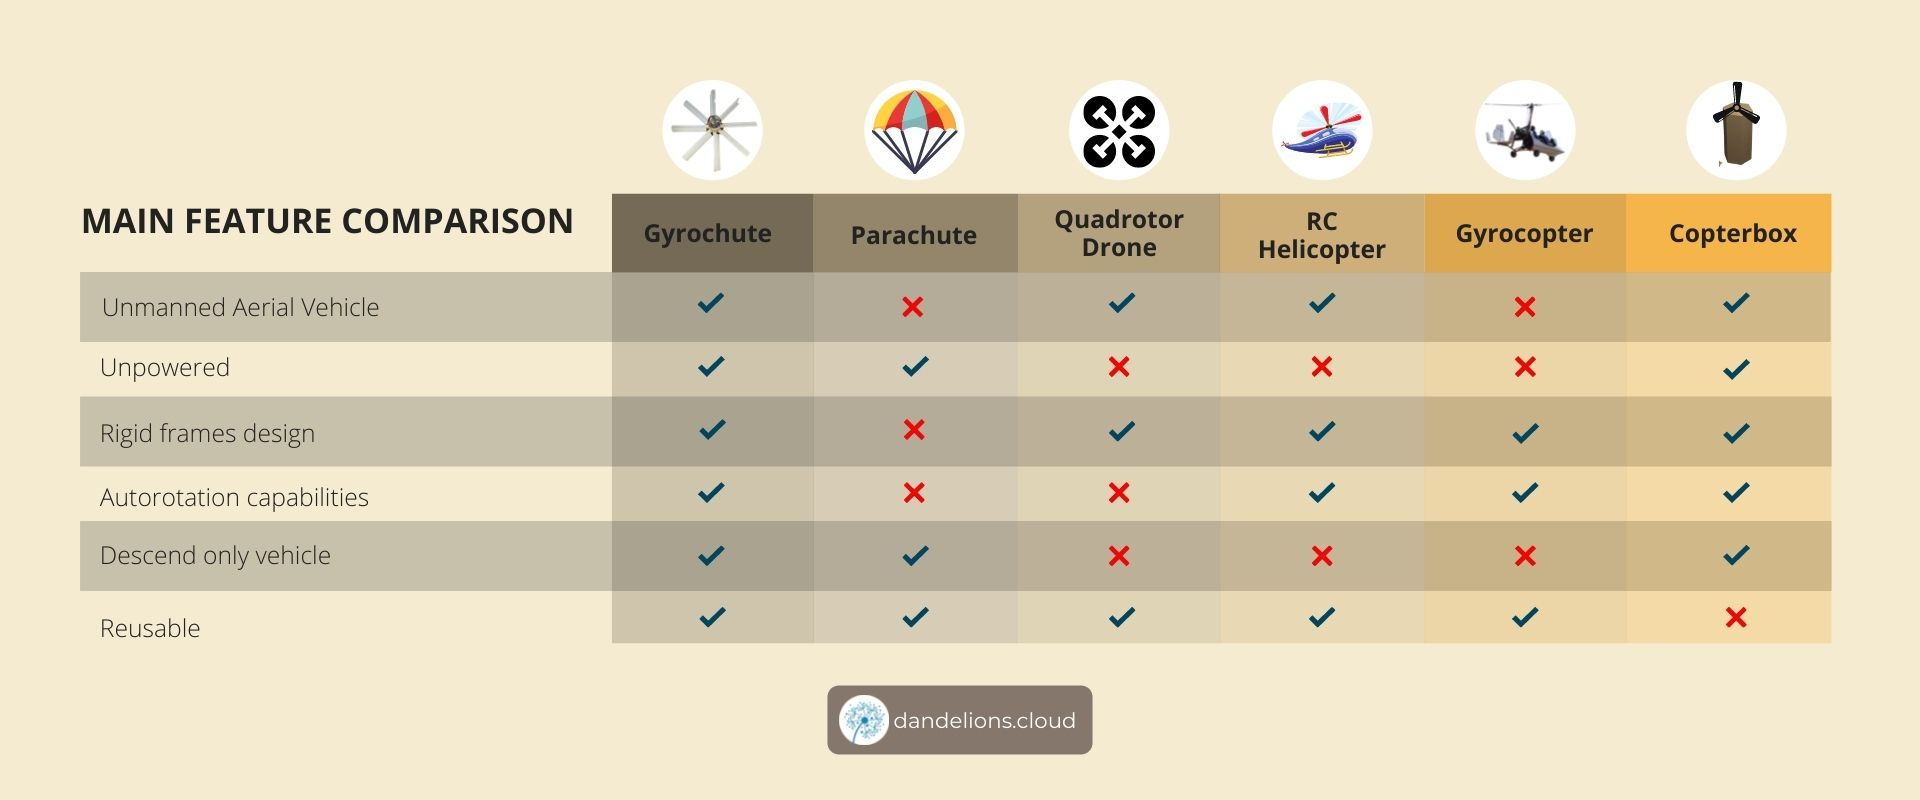 Comparing the Gyrochute with the parachute, quadrotor drone, rc helicopter, gyrocopter and copterbox